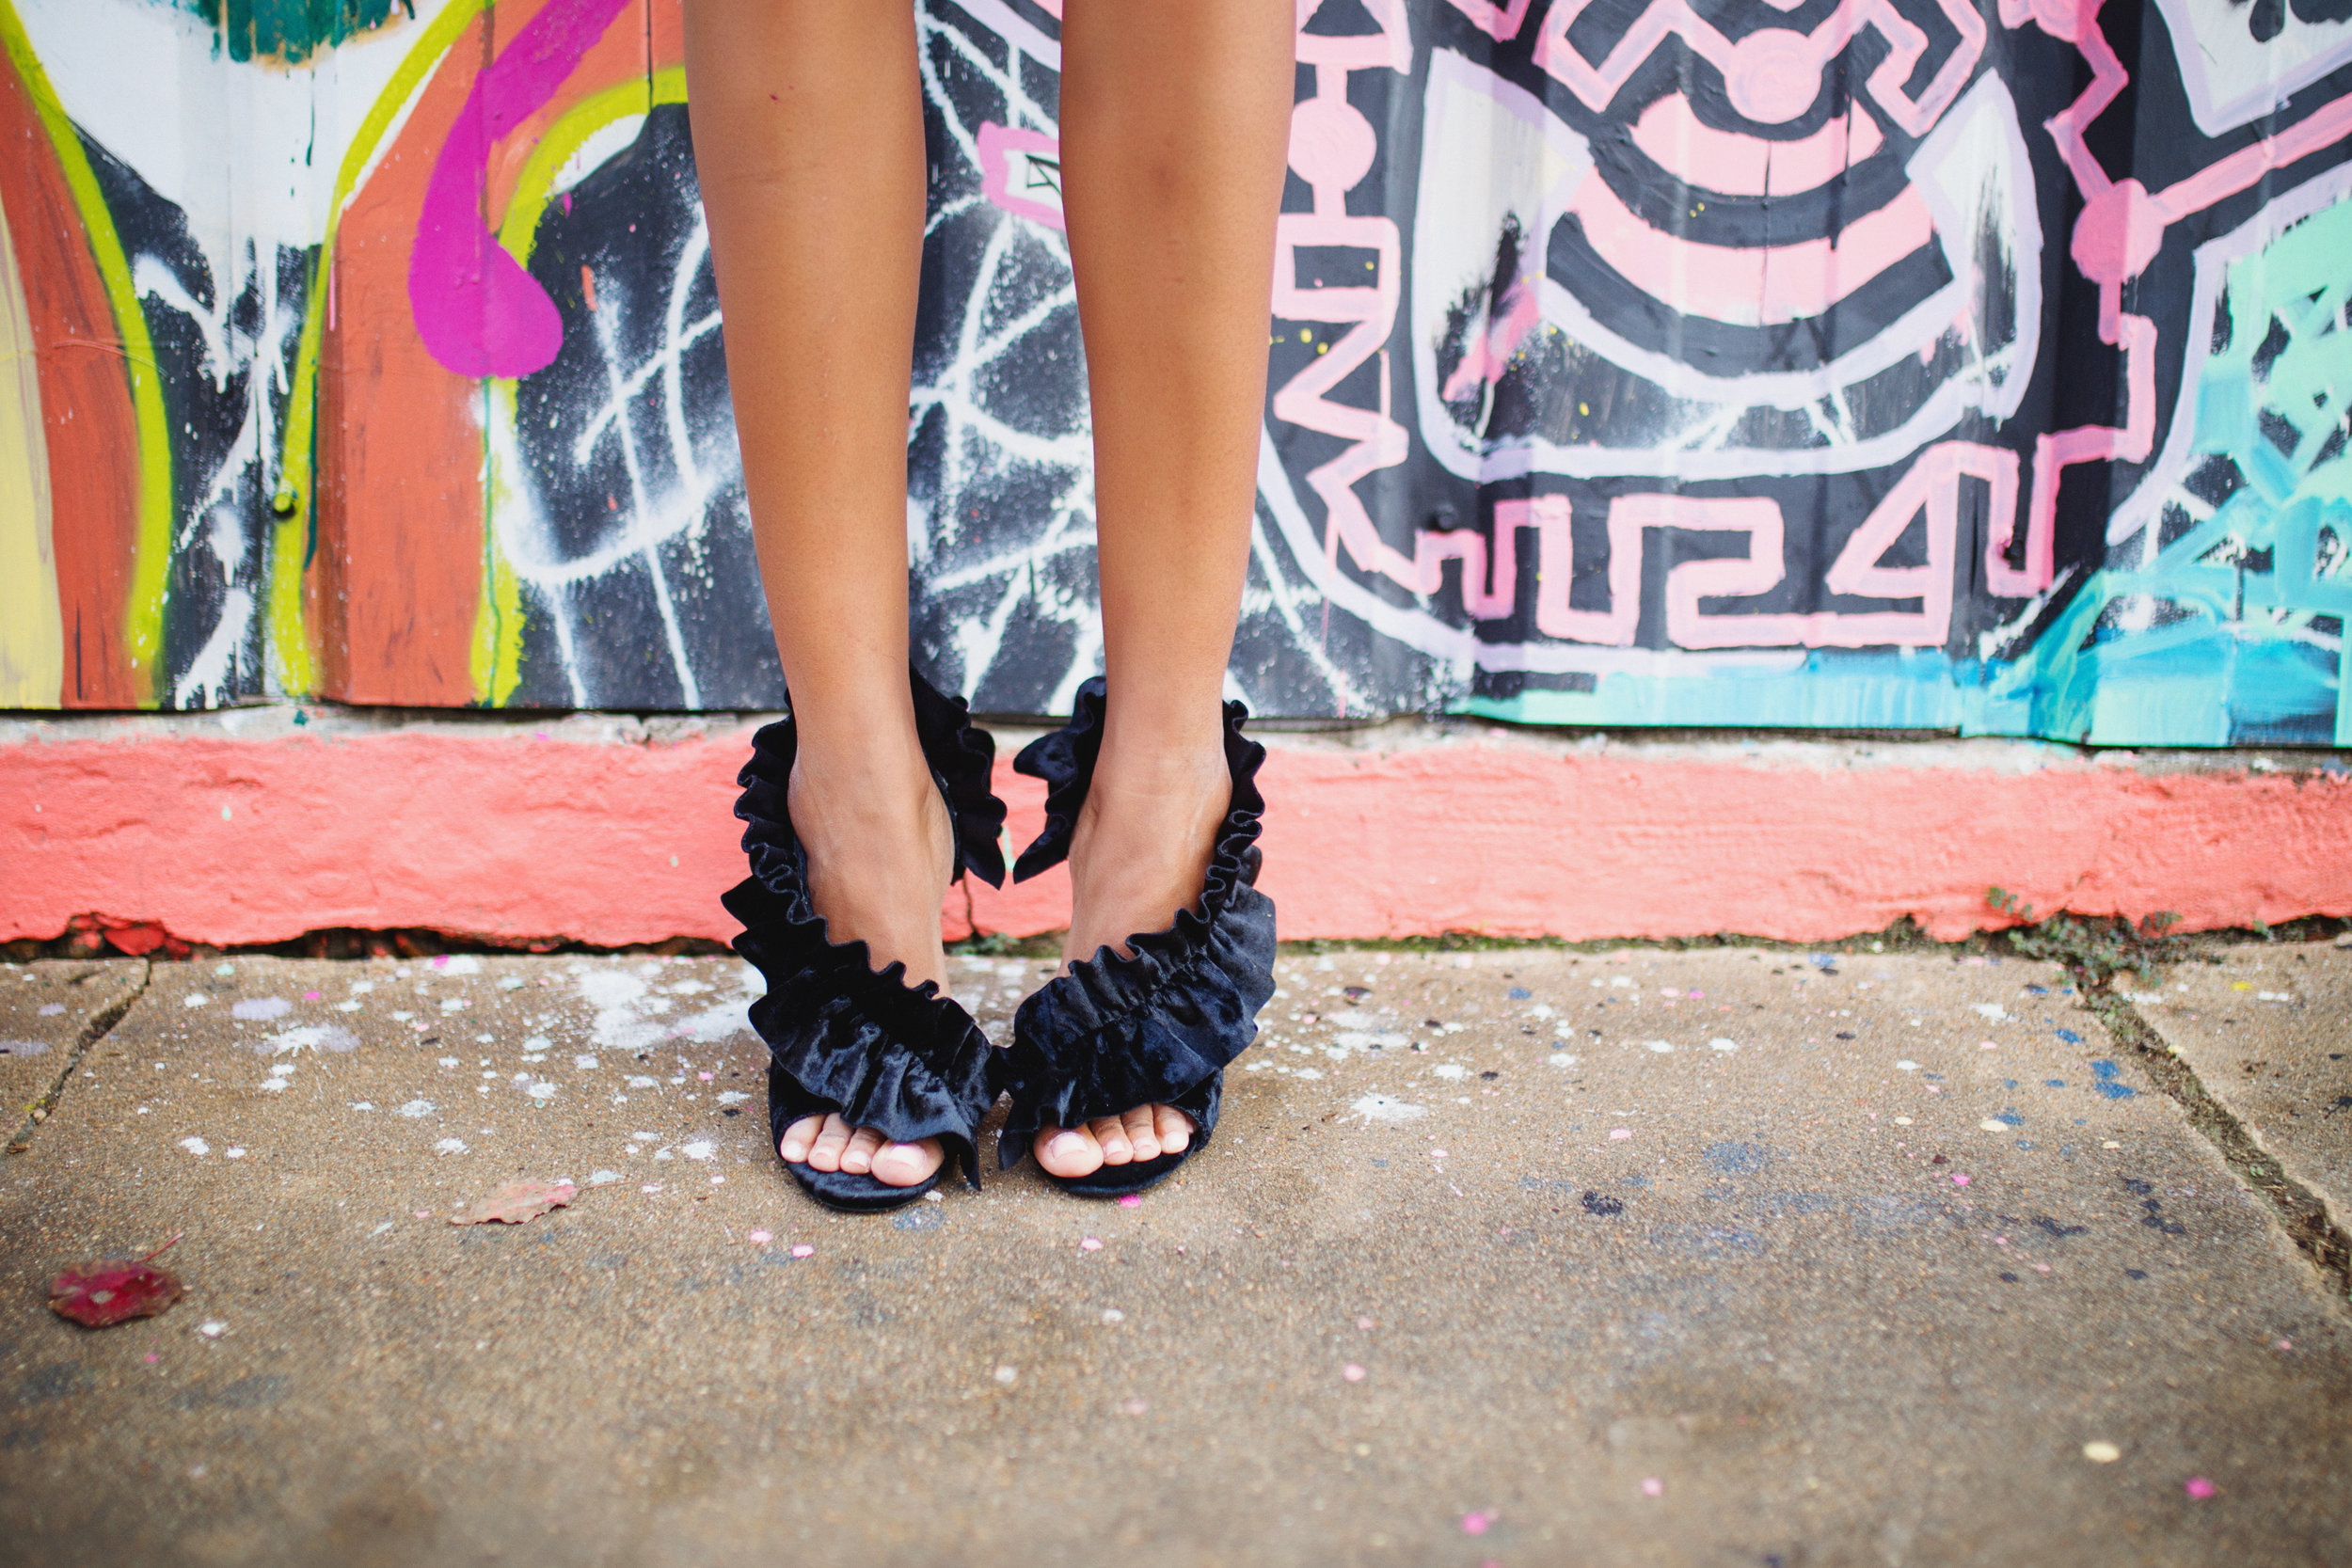 Another show stopping shoe by Cape Robbin! A fun twist to a cool look!